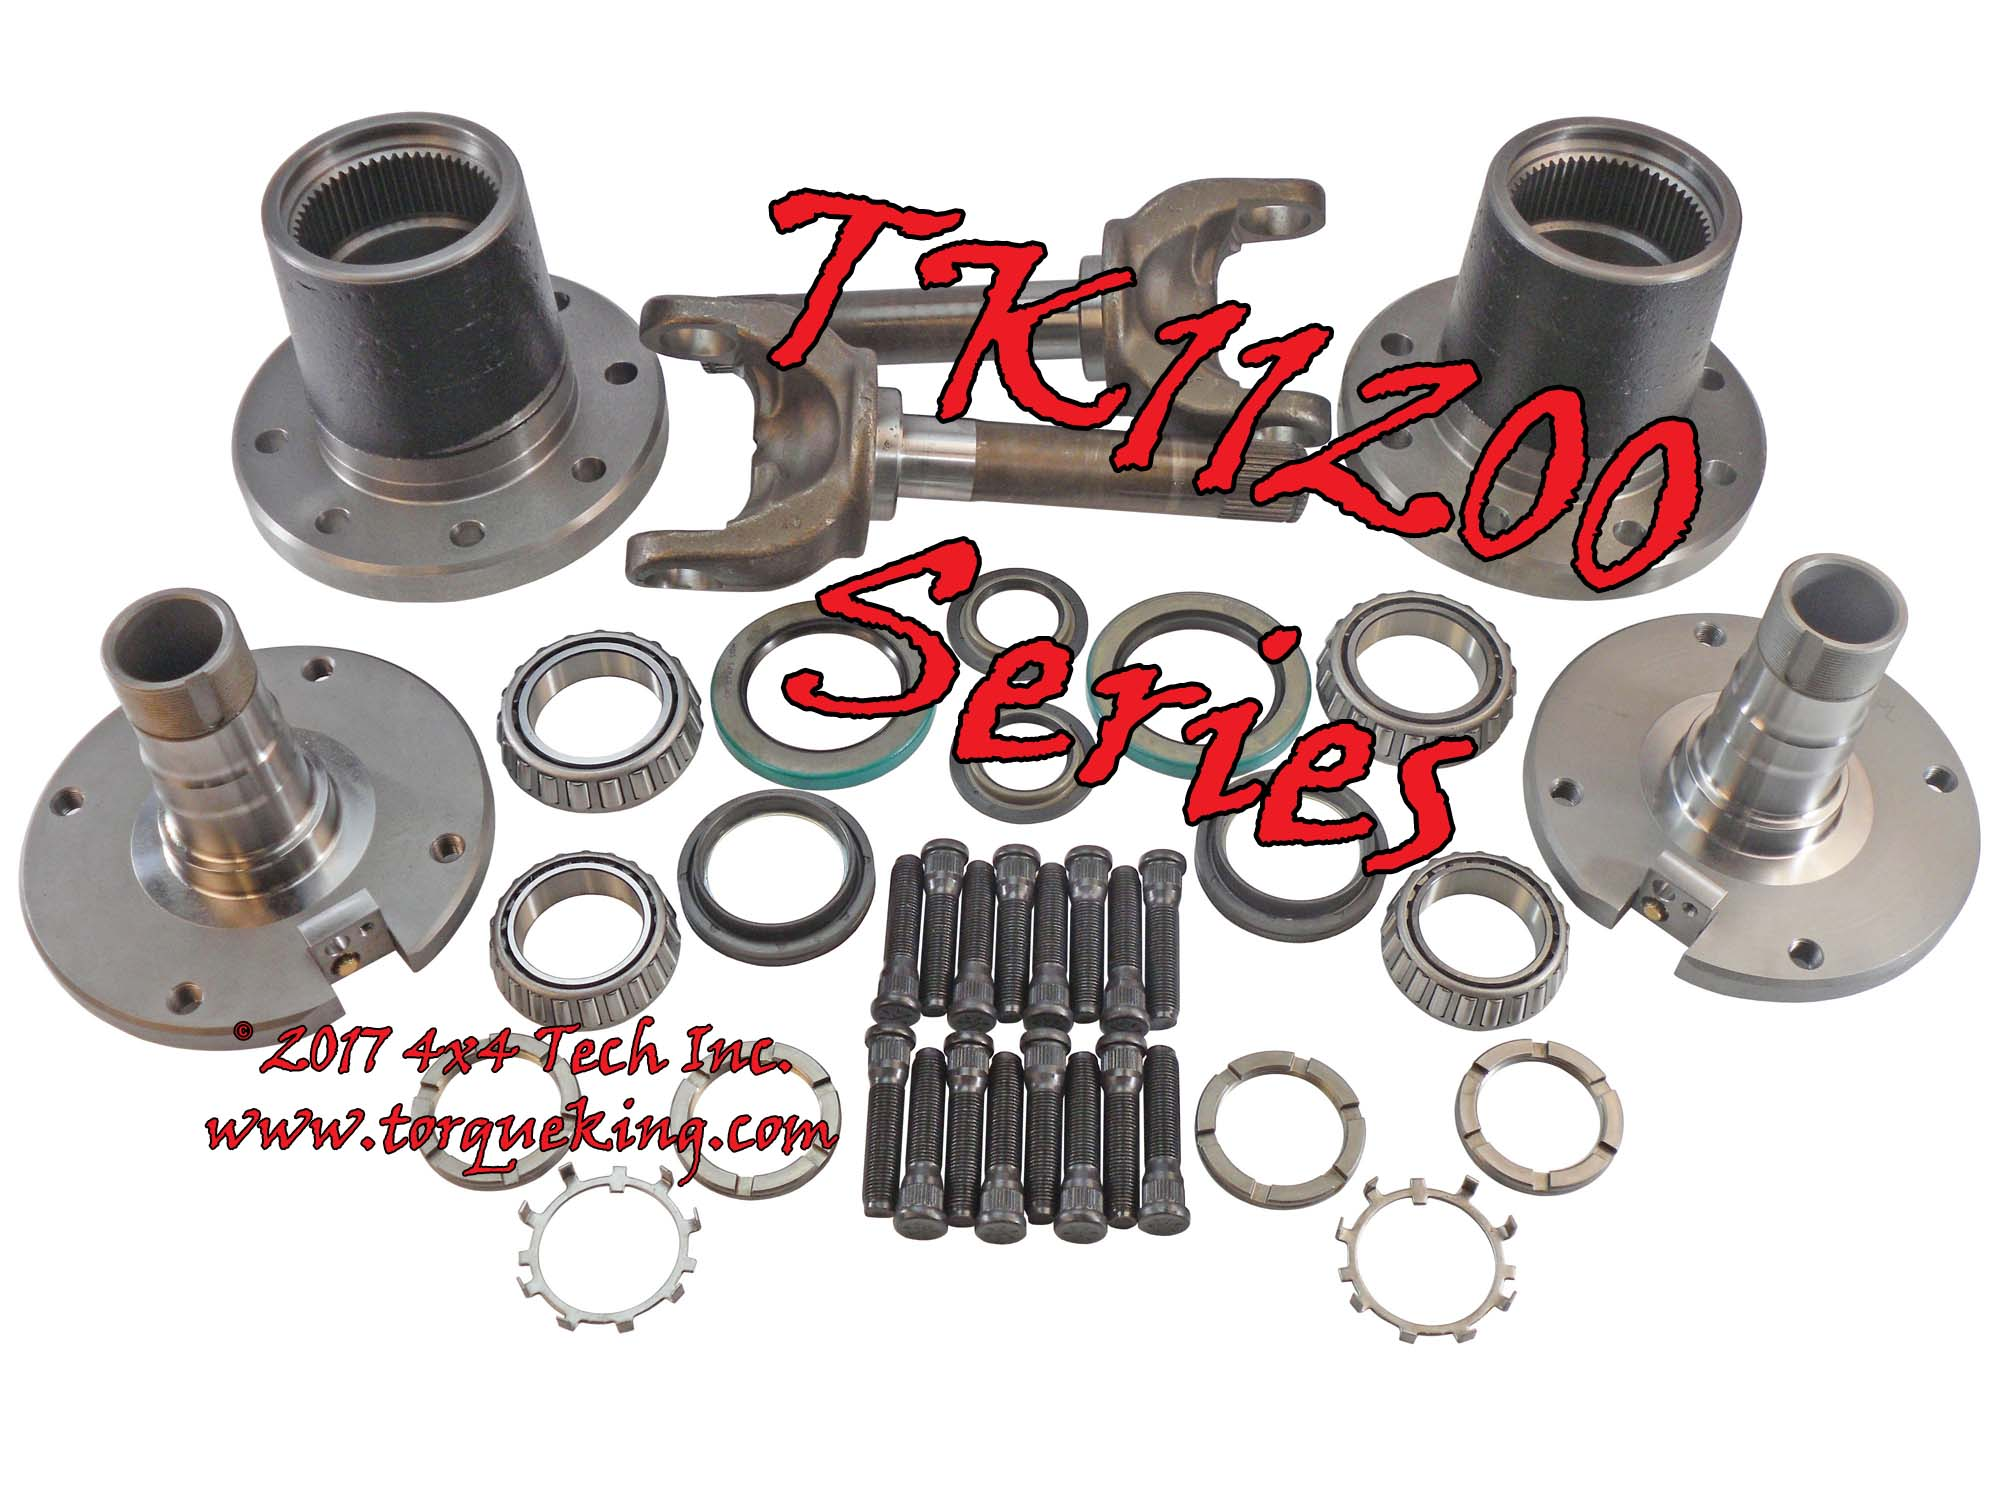 TK11200 Series Dynatrac Free-Spin™ Kits for 1998-1999 Dodge Ram 2500, Ram  3500 Dana 60 Front Axles TK11200 Series Kits include the conversion parts  and your ...